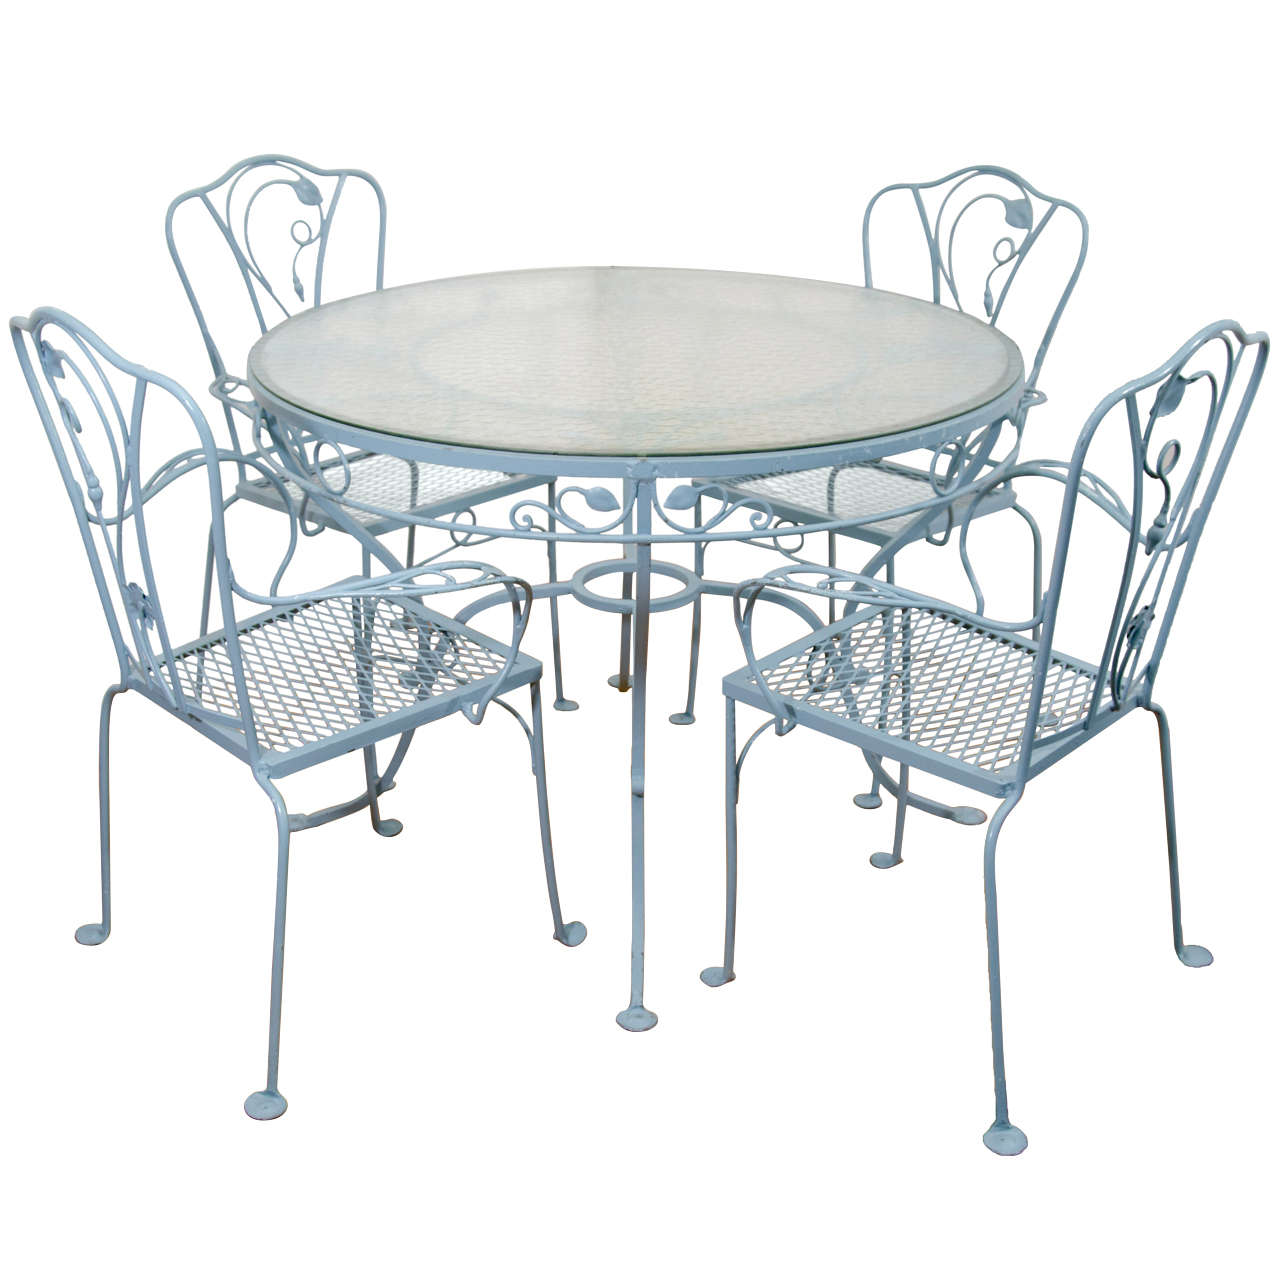 Vintage Salterini Wrought Iron Table And Chairs In Powder Blue For